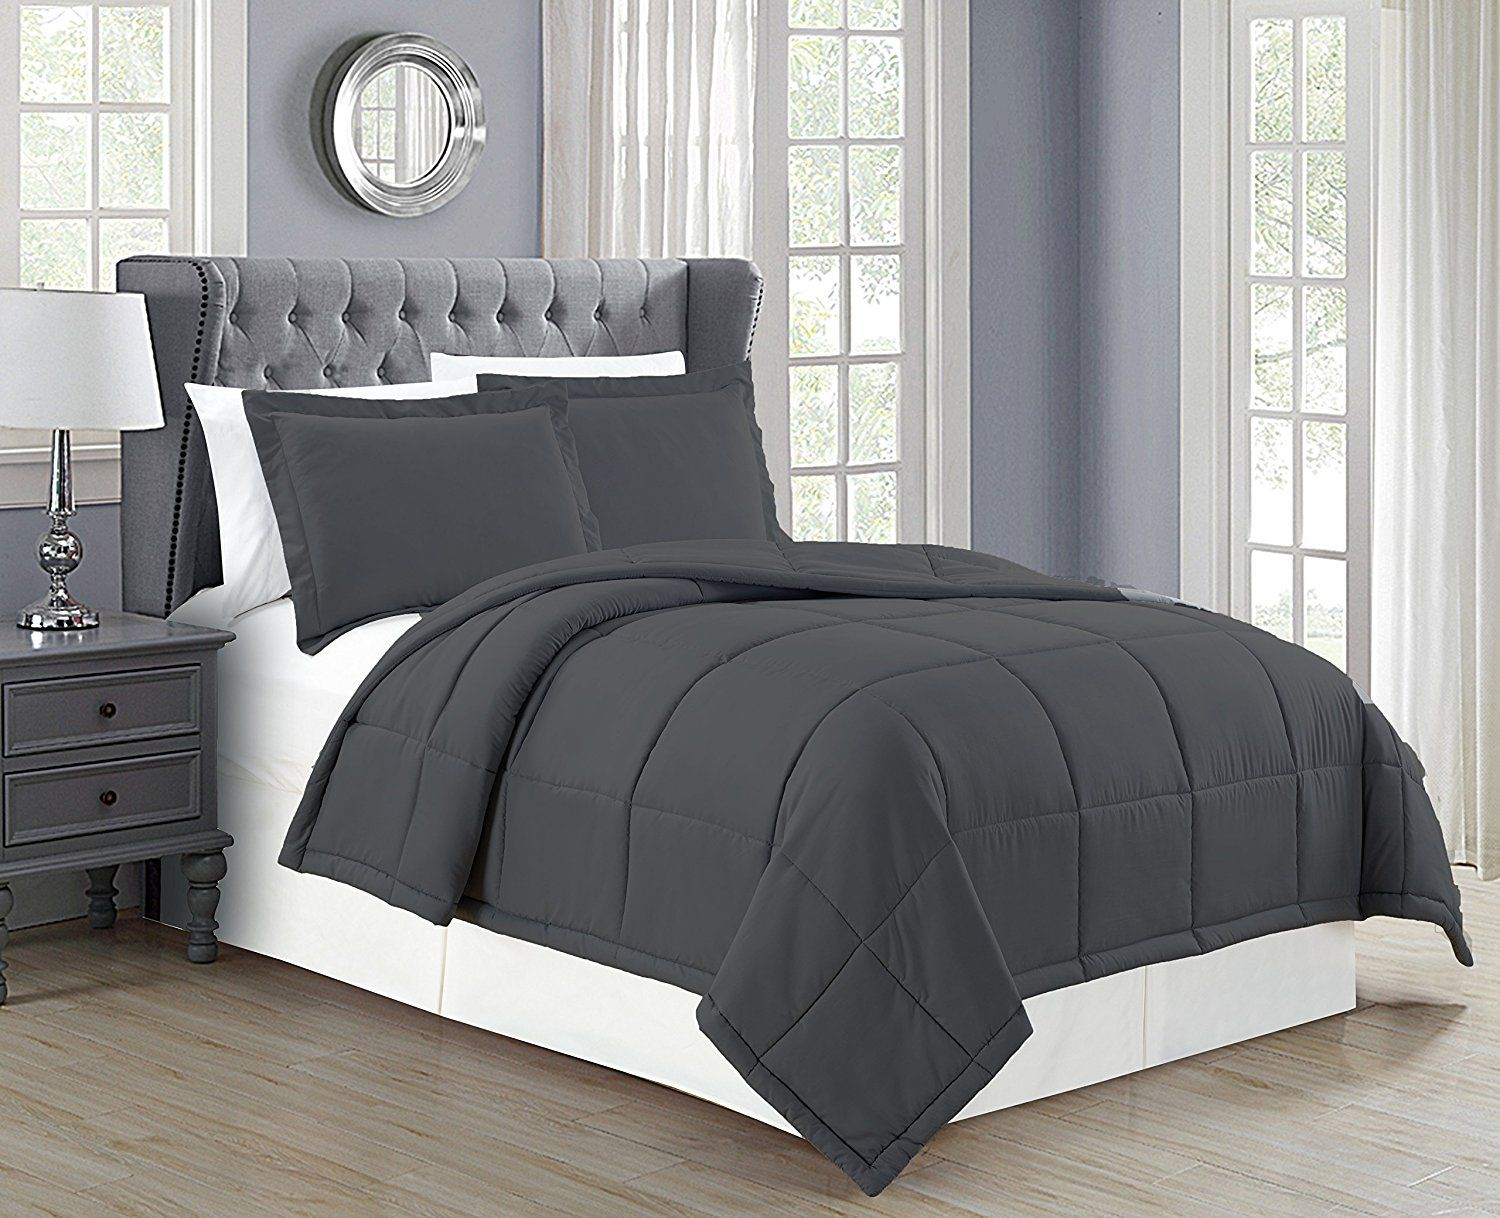 Delboutree Charcoal Gray Turquoise Bedding Sets Sale Grey